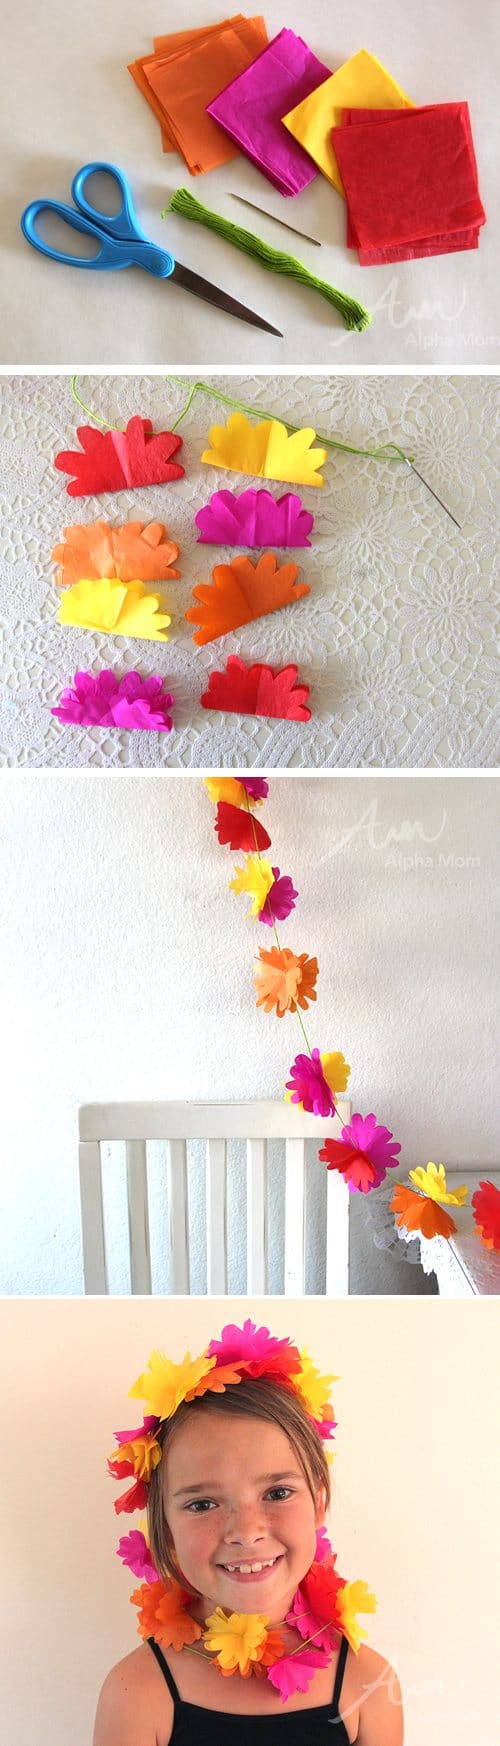 Easy Spring Flower Garland DIY by Brenda Ponnay for Alphamom.com